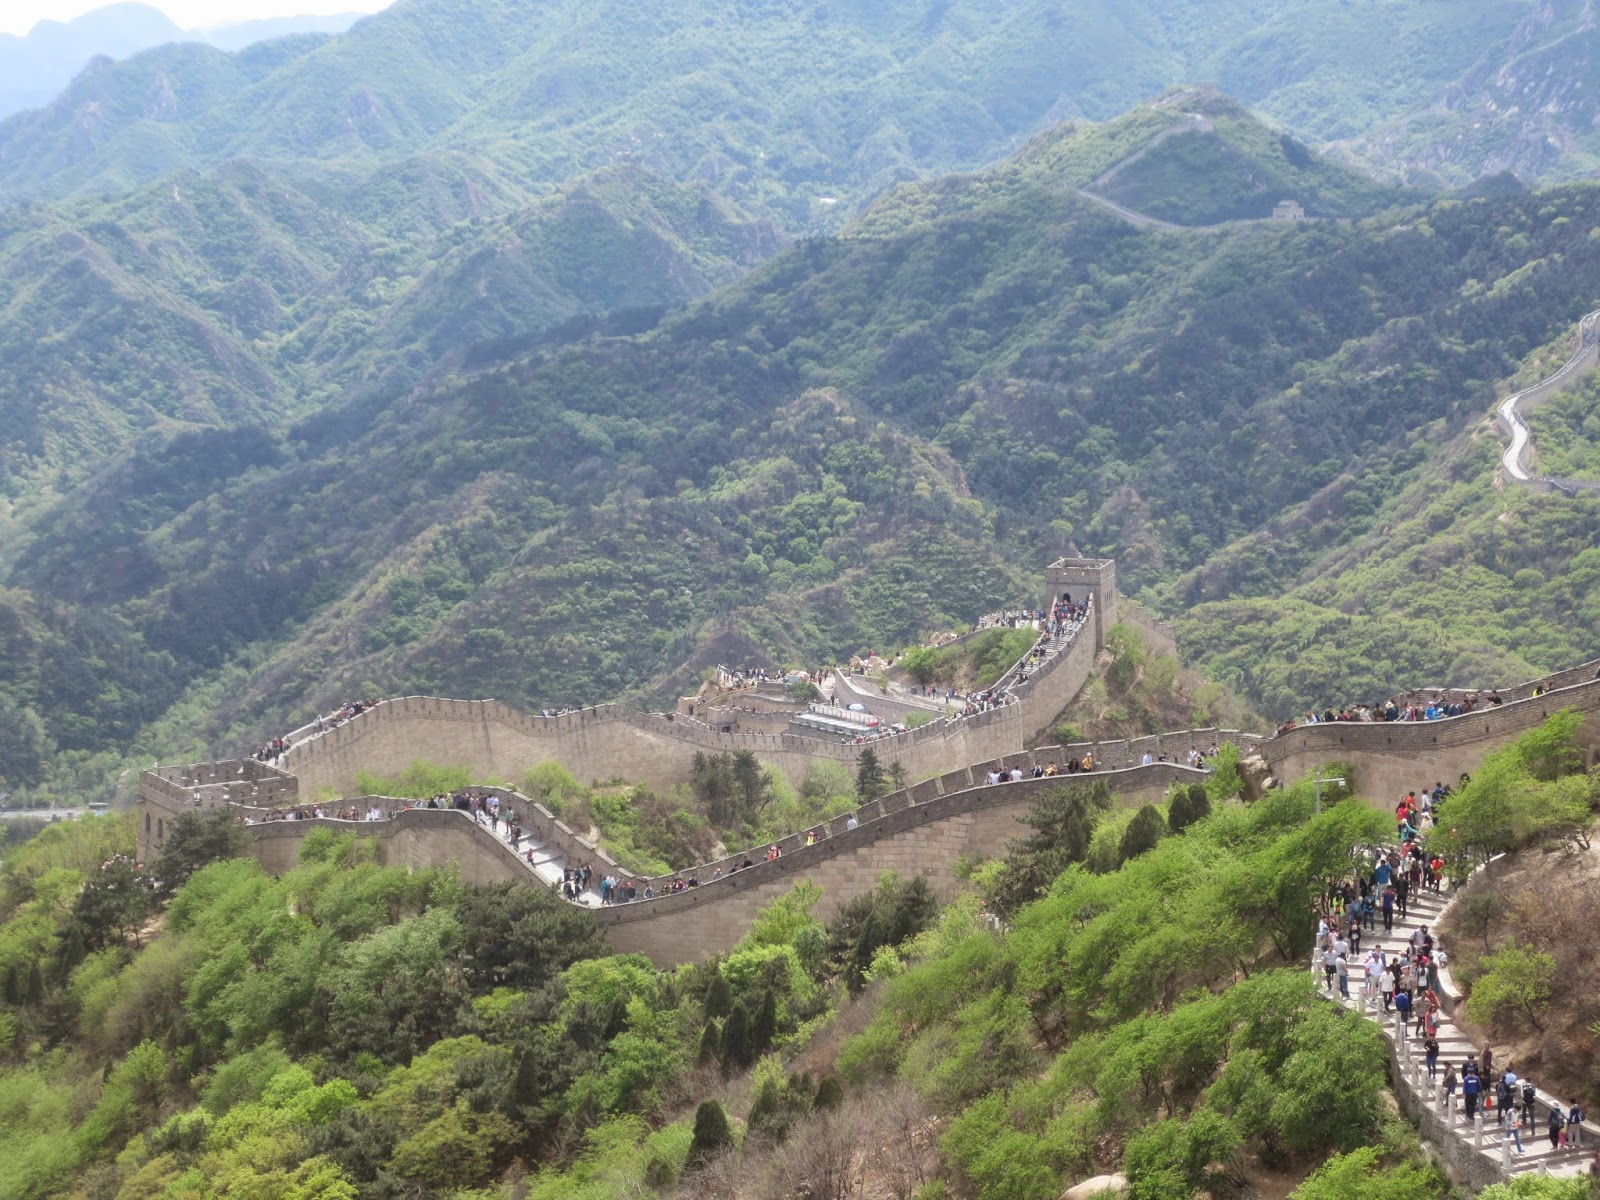 Badaling Great Wall View